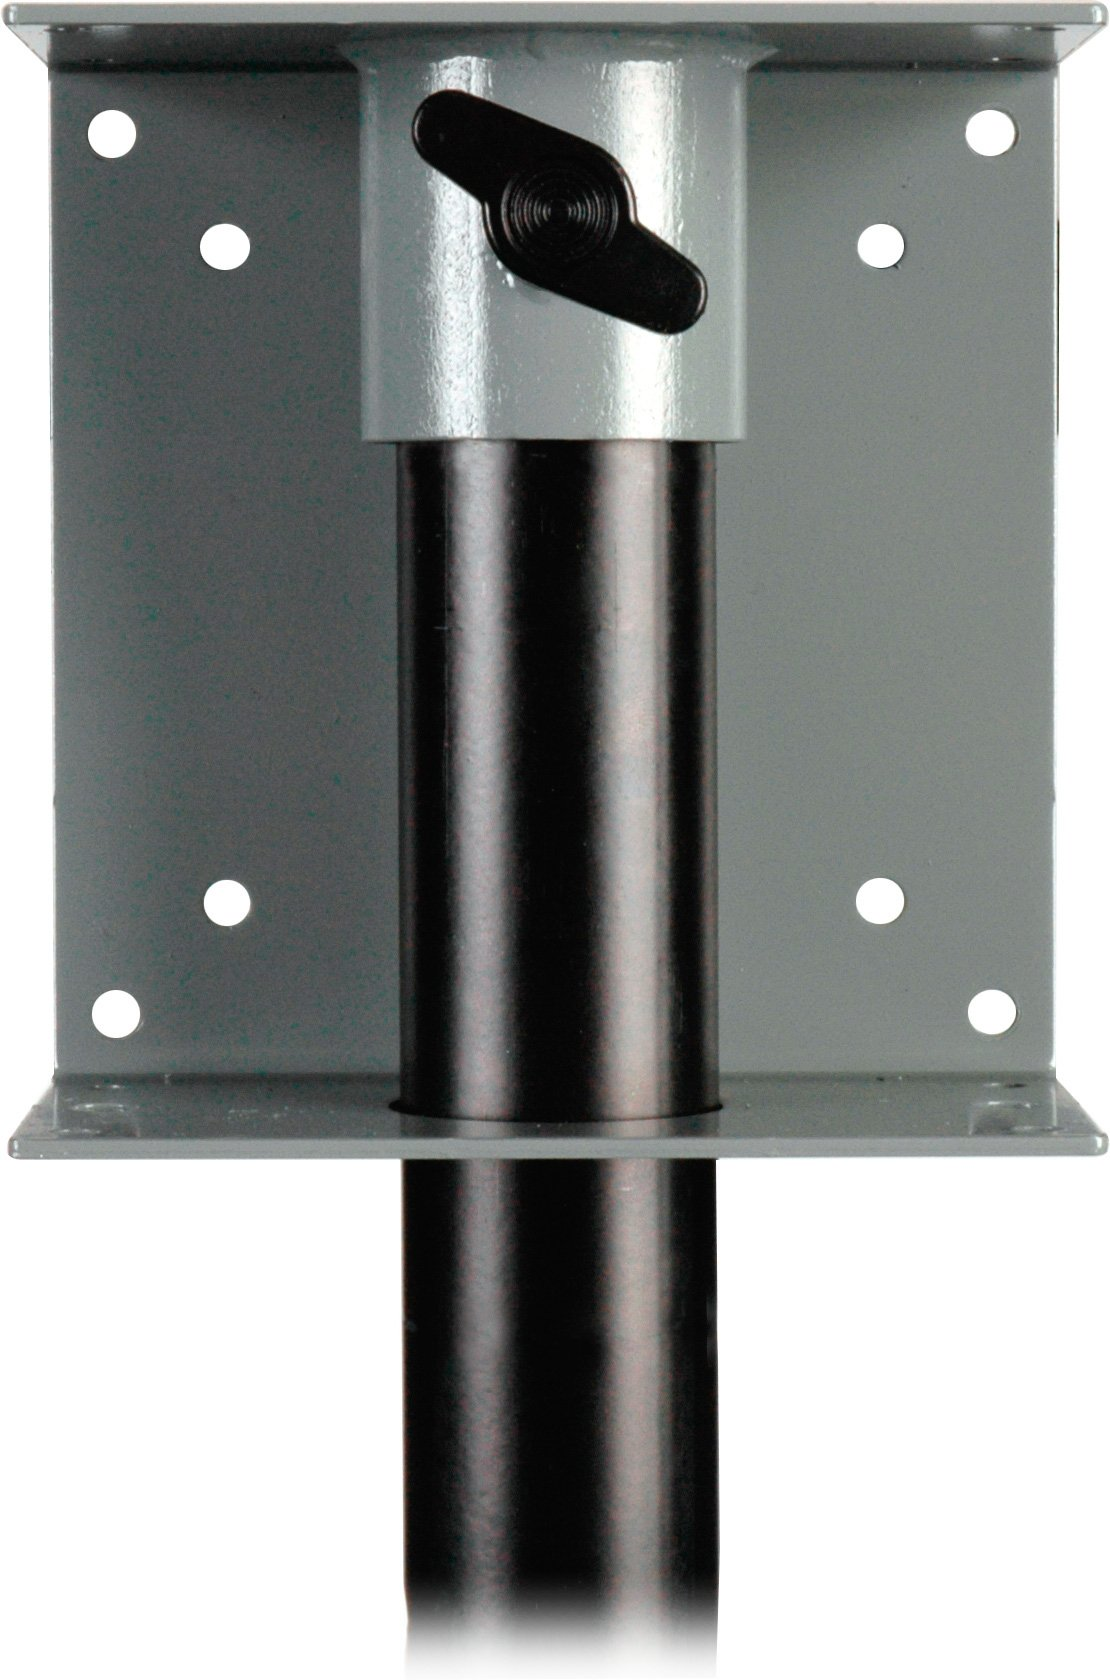 Speaker Stand Flat Panel TV/Monitor Mount